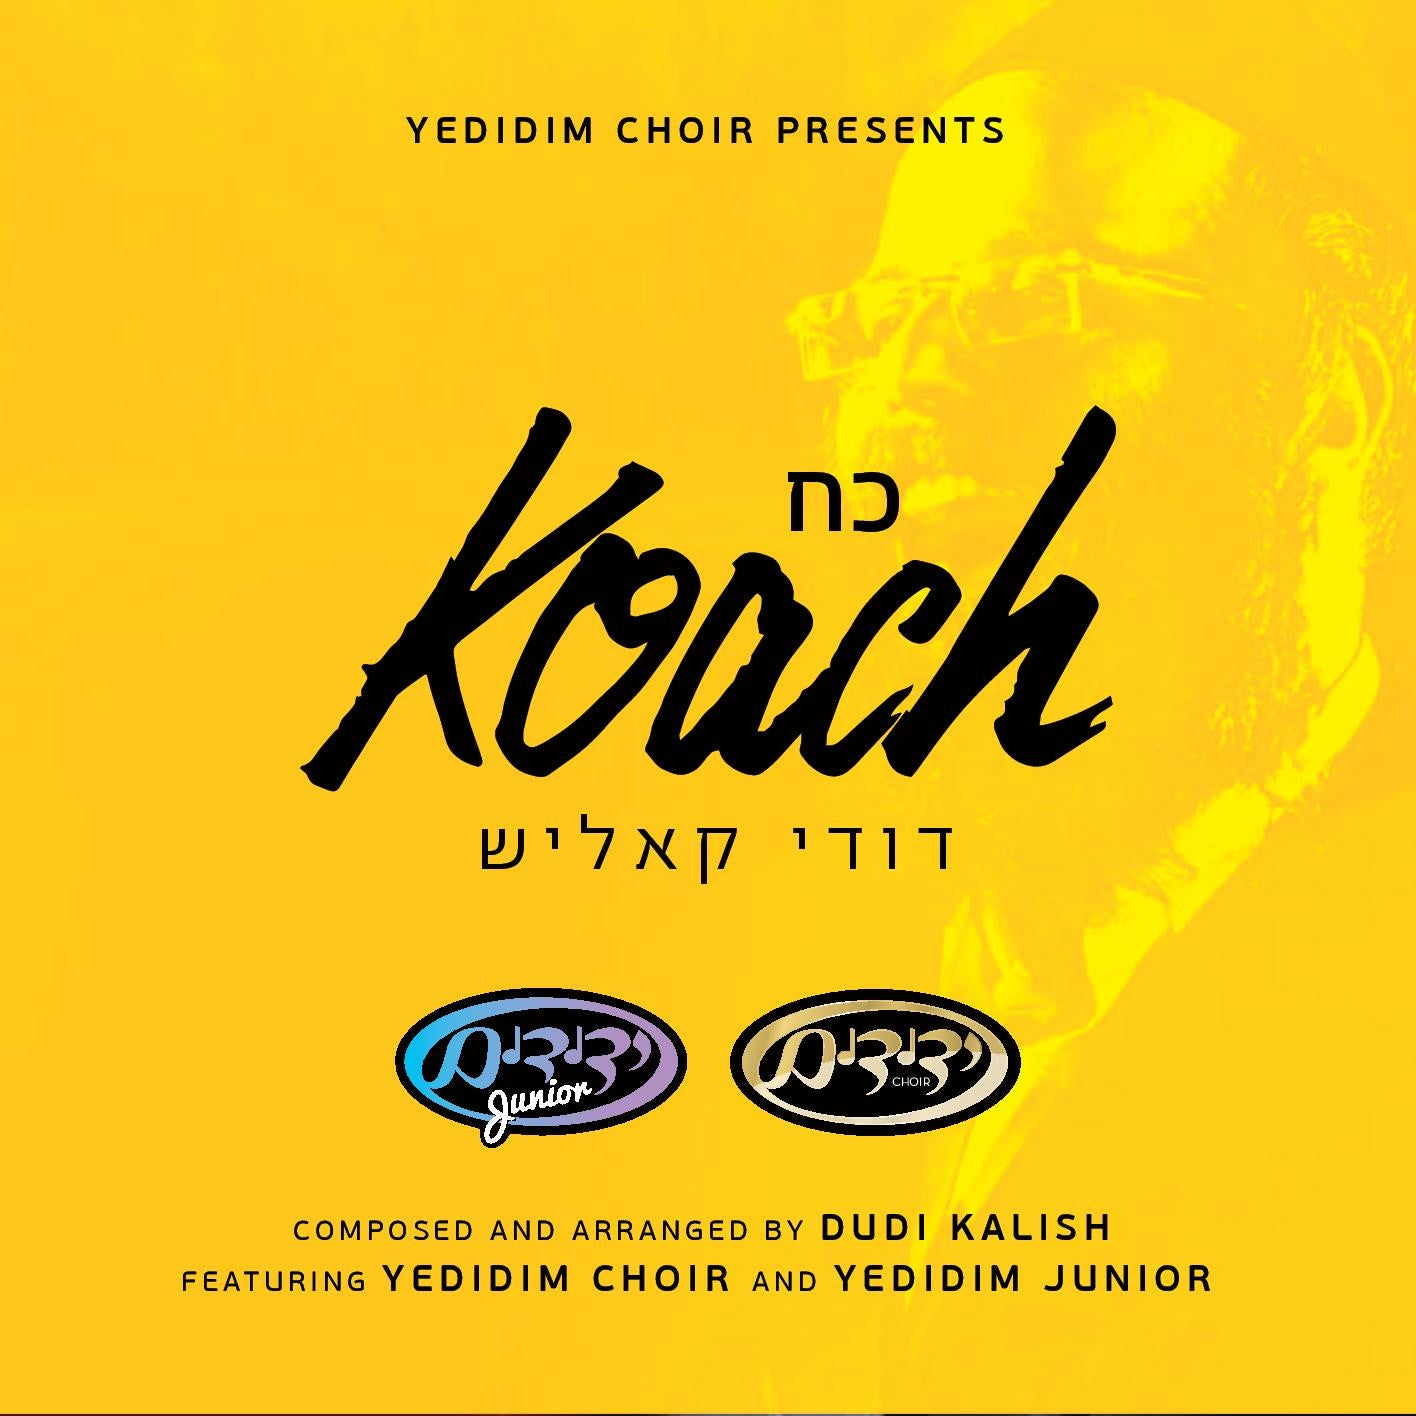 Yedidim Choir - Koach